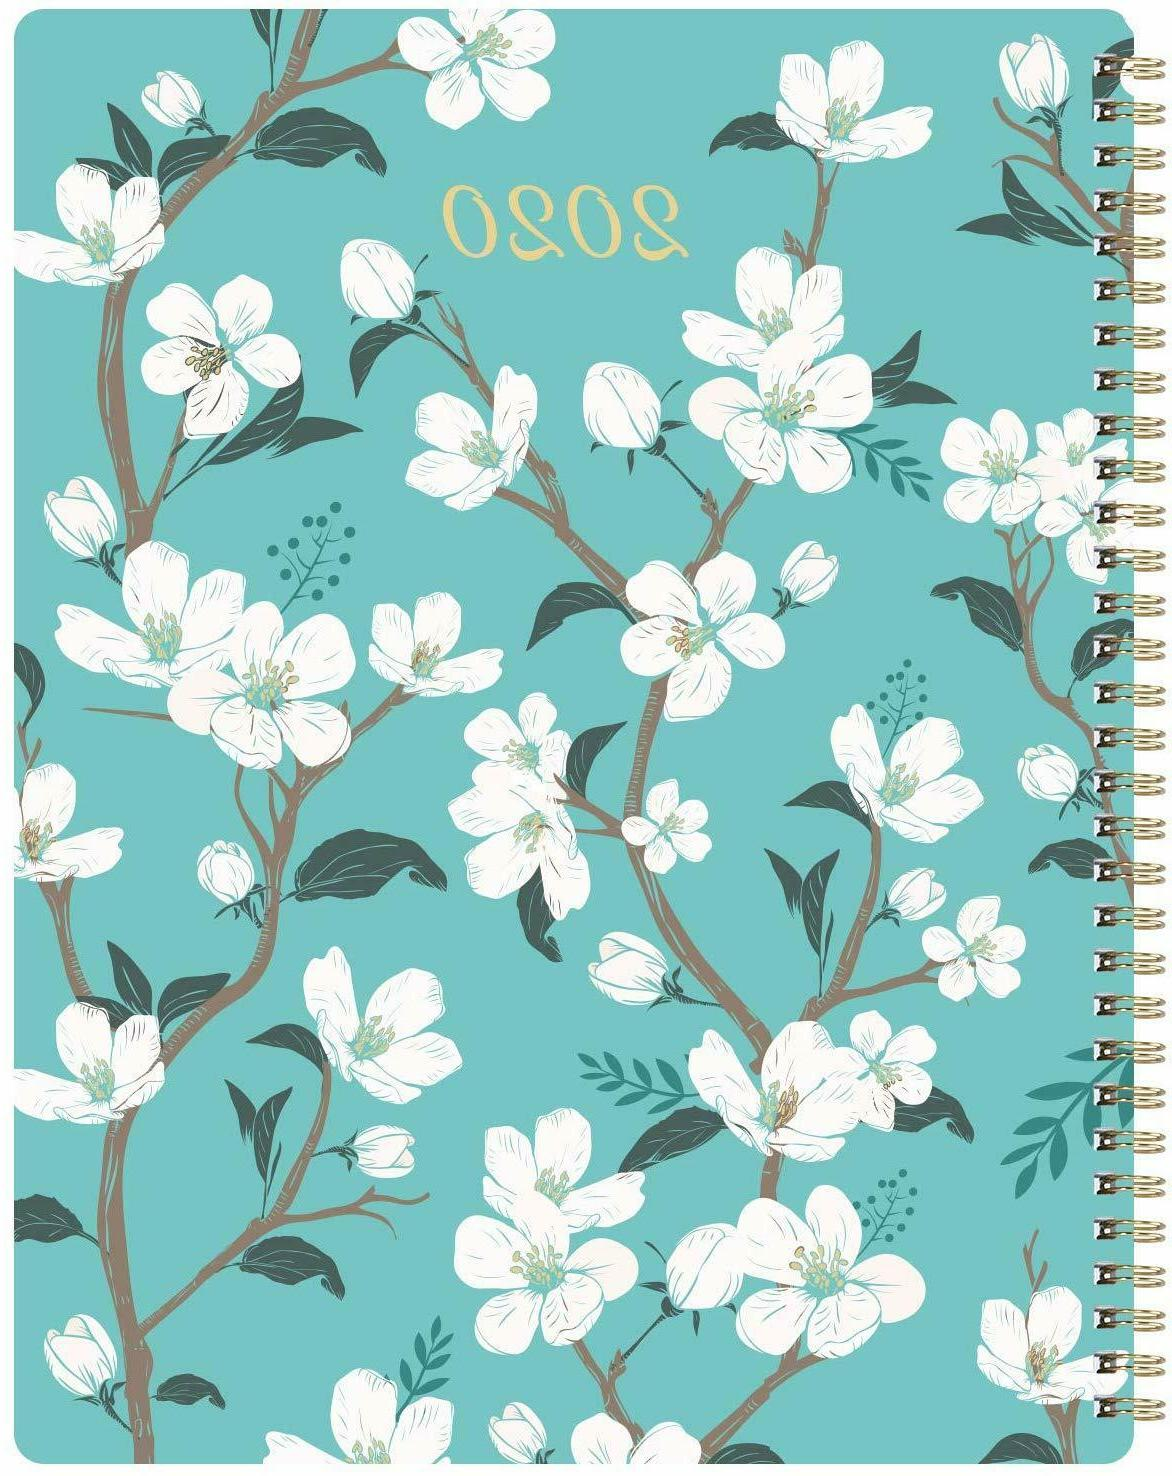 2020 Weekly & Monthly Planner Flexible Cover Twin-Wire Bindi